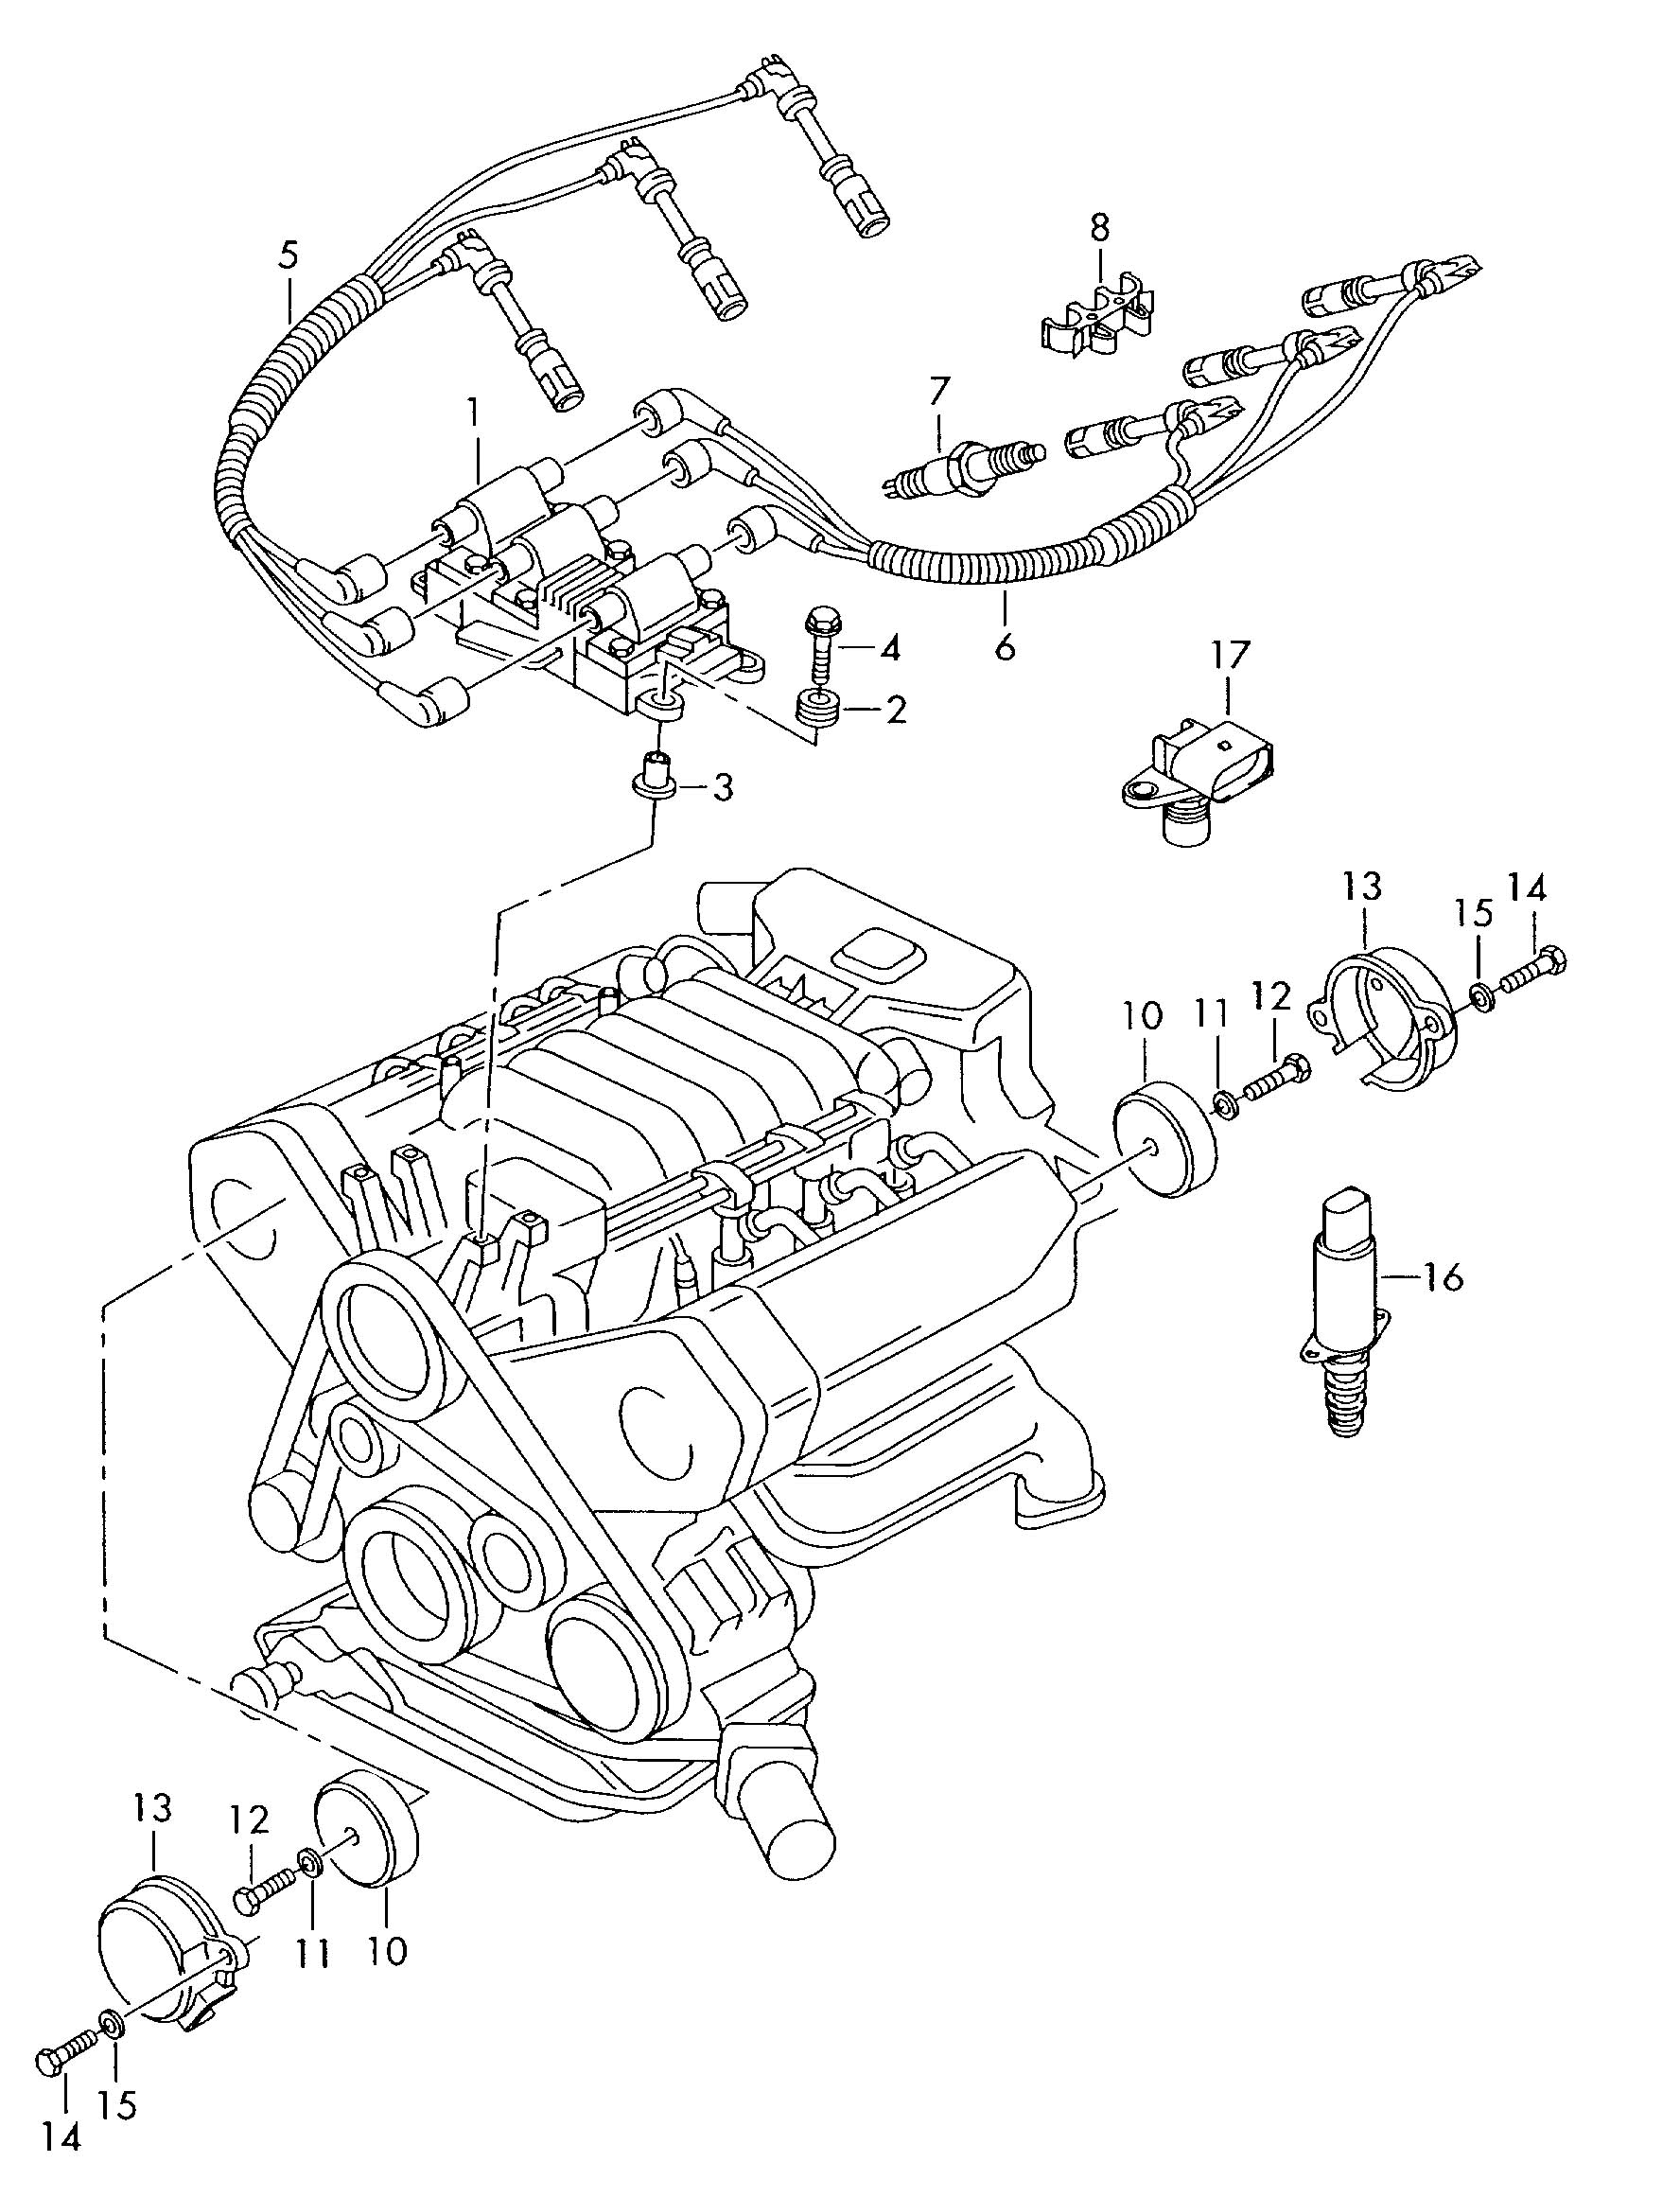 Electric Motor Wiring Diagram U V W as well Checking tci H switch unit and hall sender as well Automotive Wiring Diagrams Golf Mk2 Air Condition likewise 2008 Vw Rabbit Wiring Diagram further Jaguar Mk1 Wiring Diagram. on wiring diagrams vw golf mk1